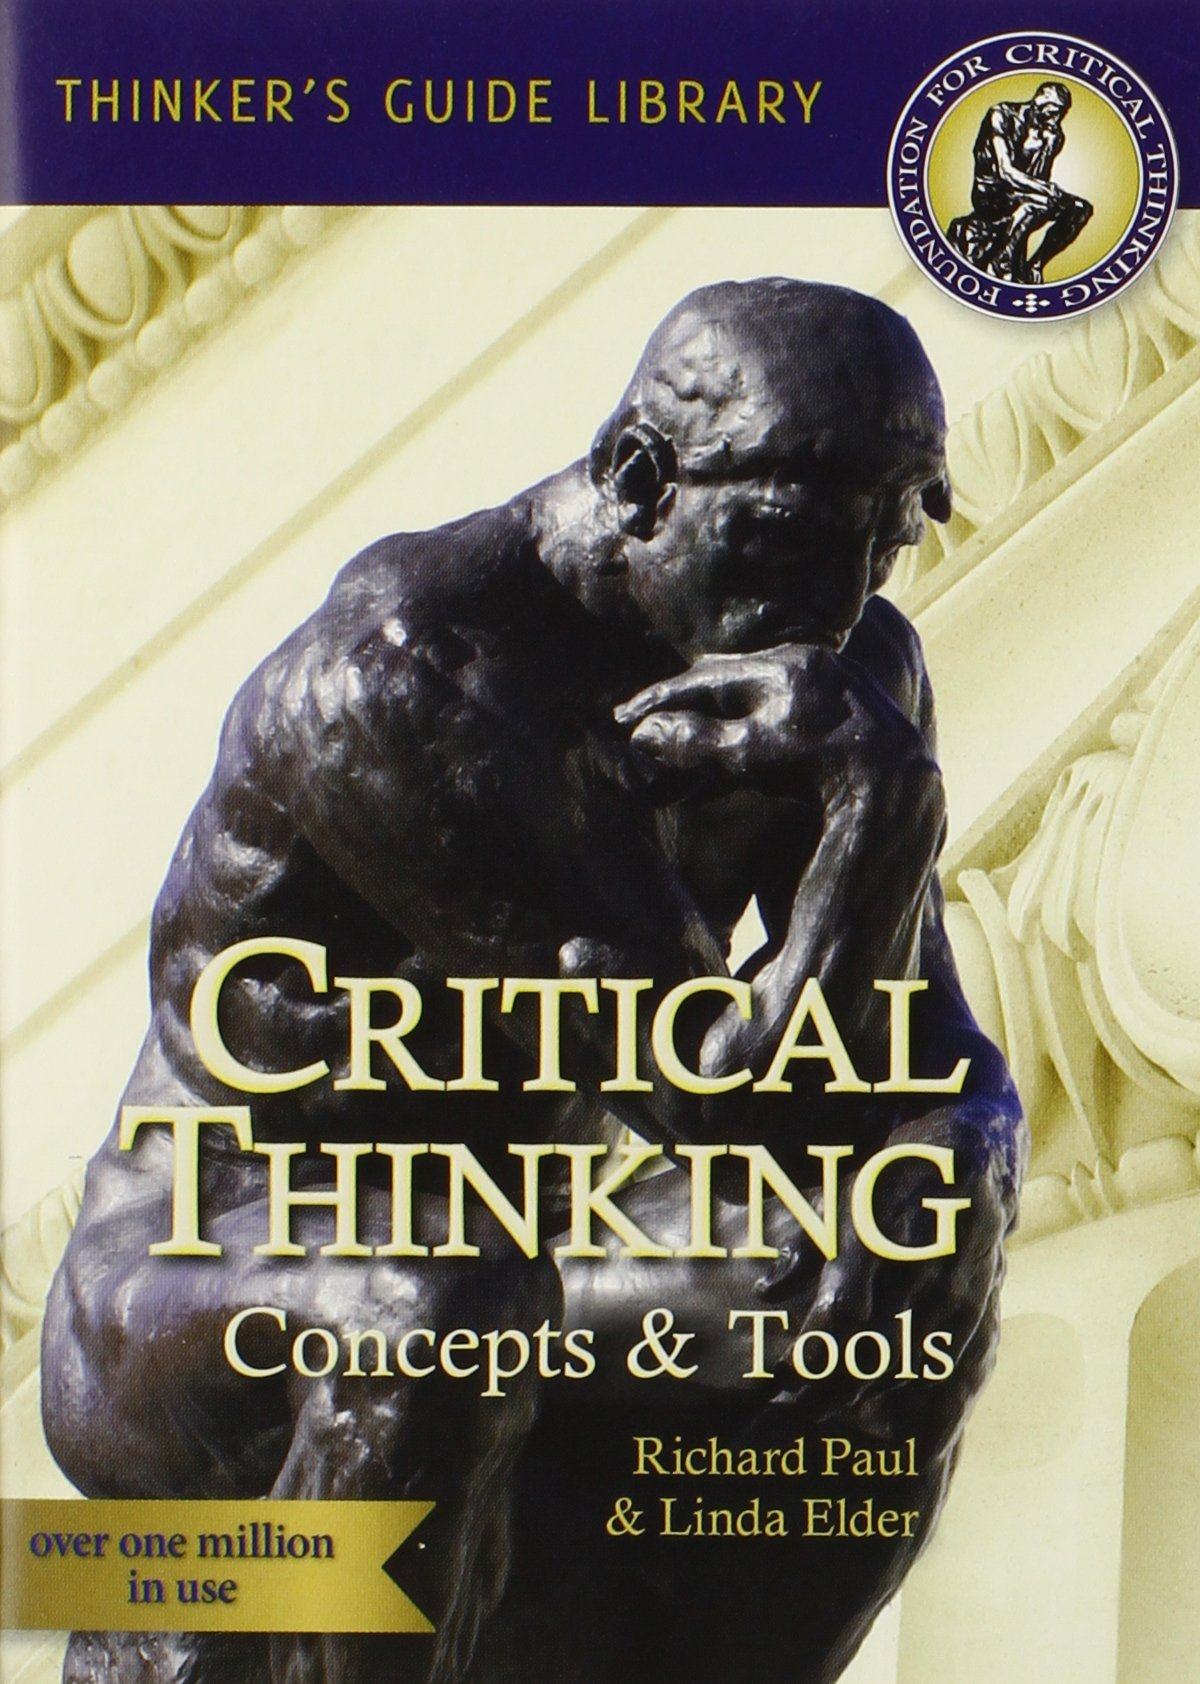 Read Online The Miniature Guide to Critical Thinking Concepts and Tools   Thinker s Guide  Richard   Video Dailymotion